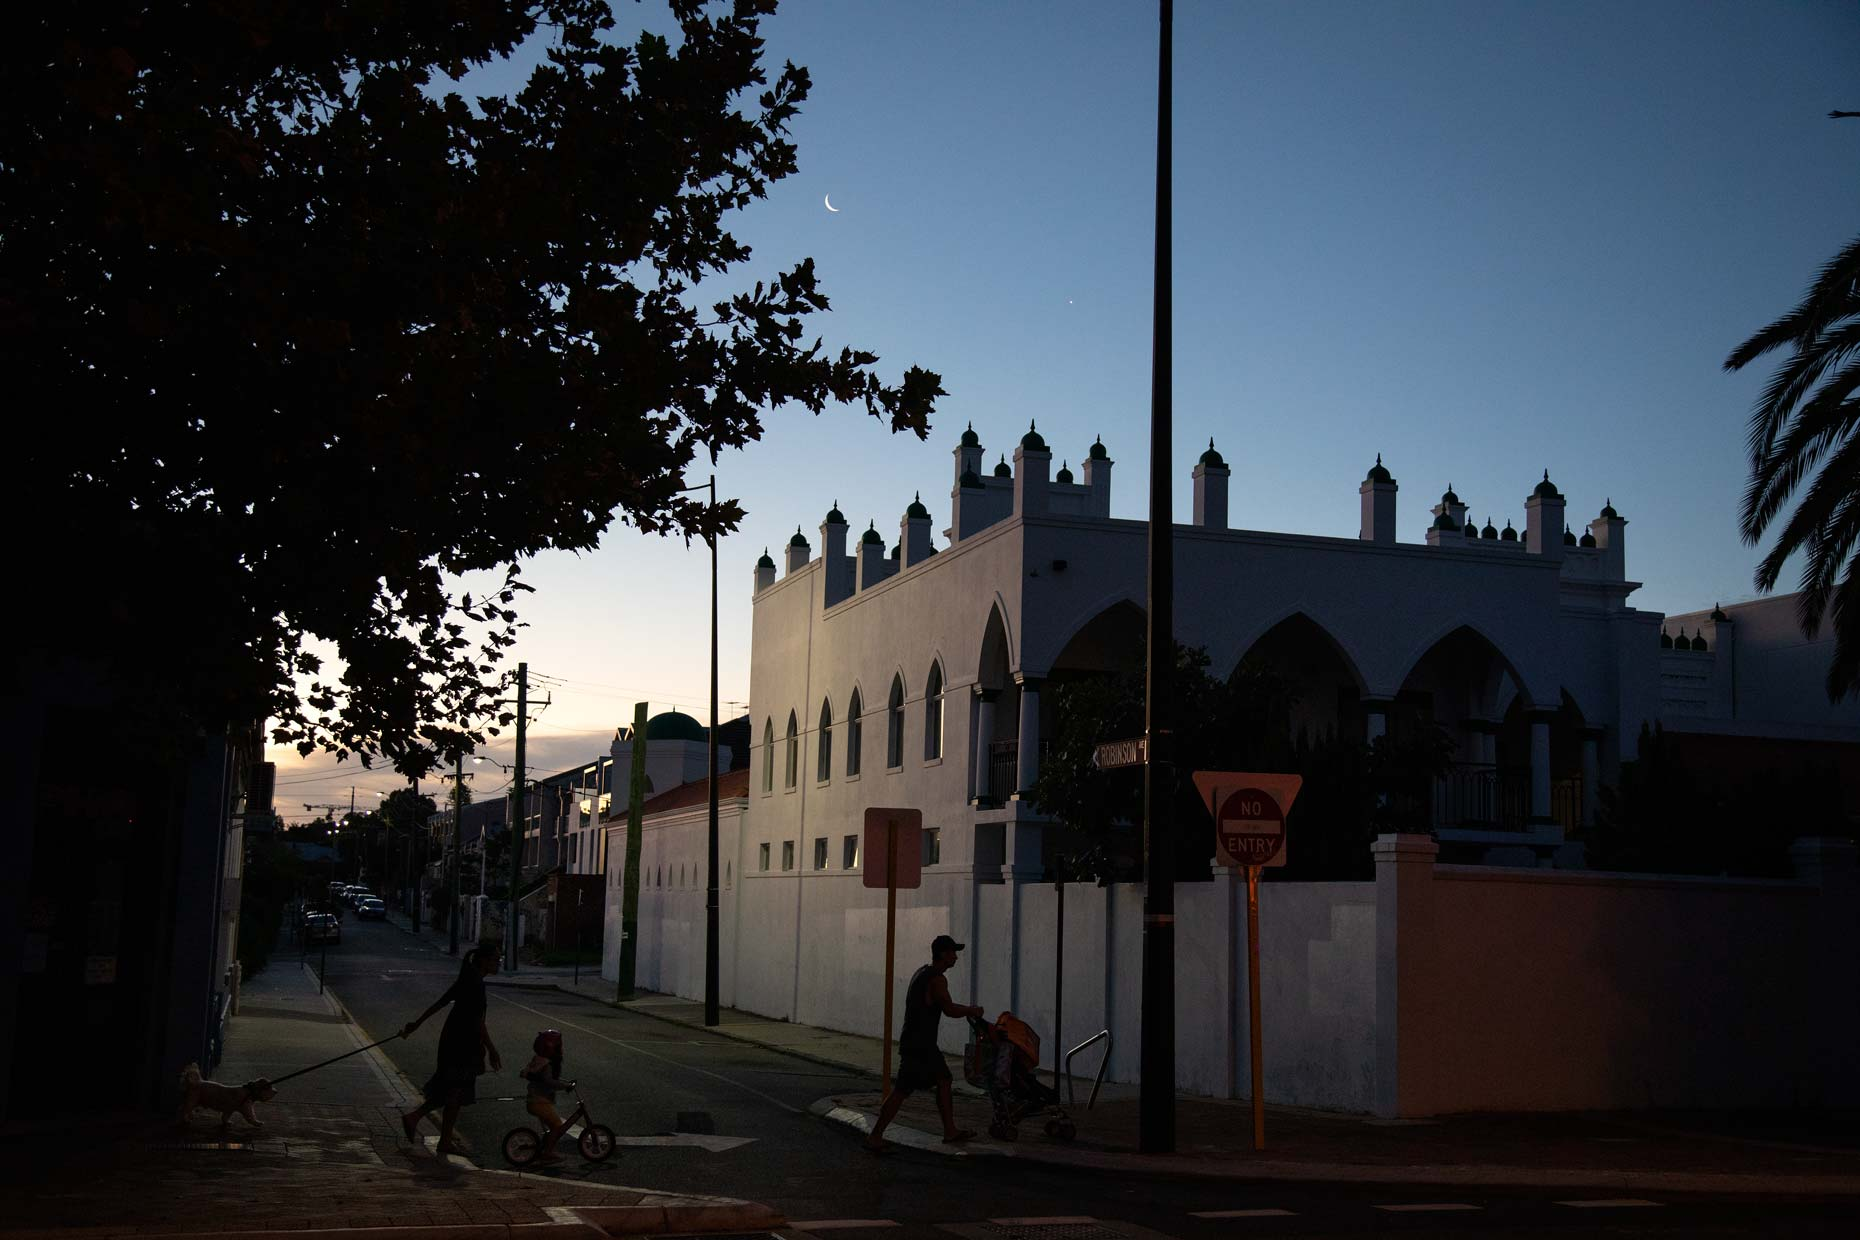 Perth Mosque at dusk during COVID-19 lockdown